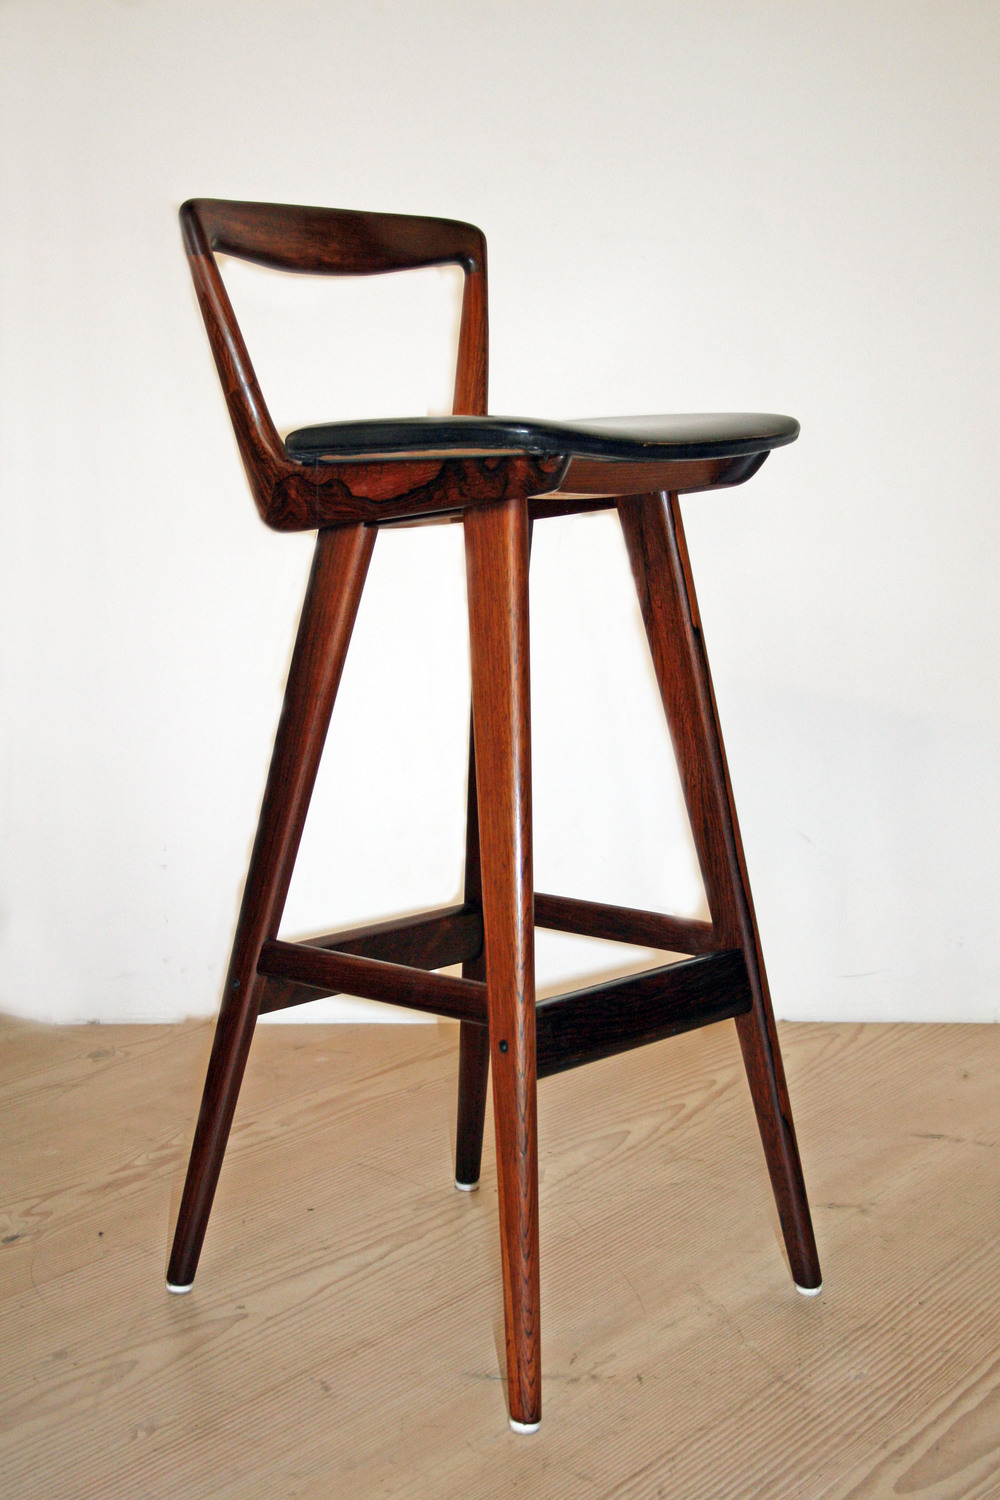 R Hansen Barstool • made 1960-69 •